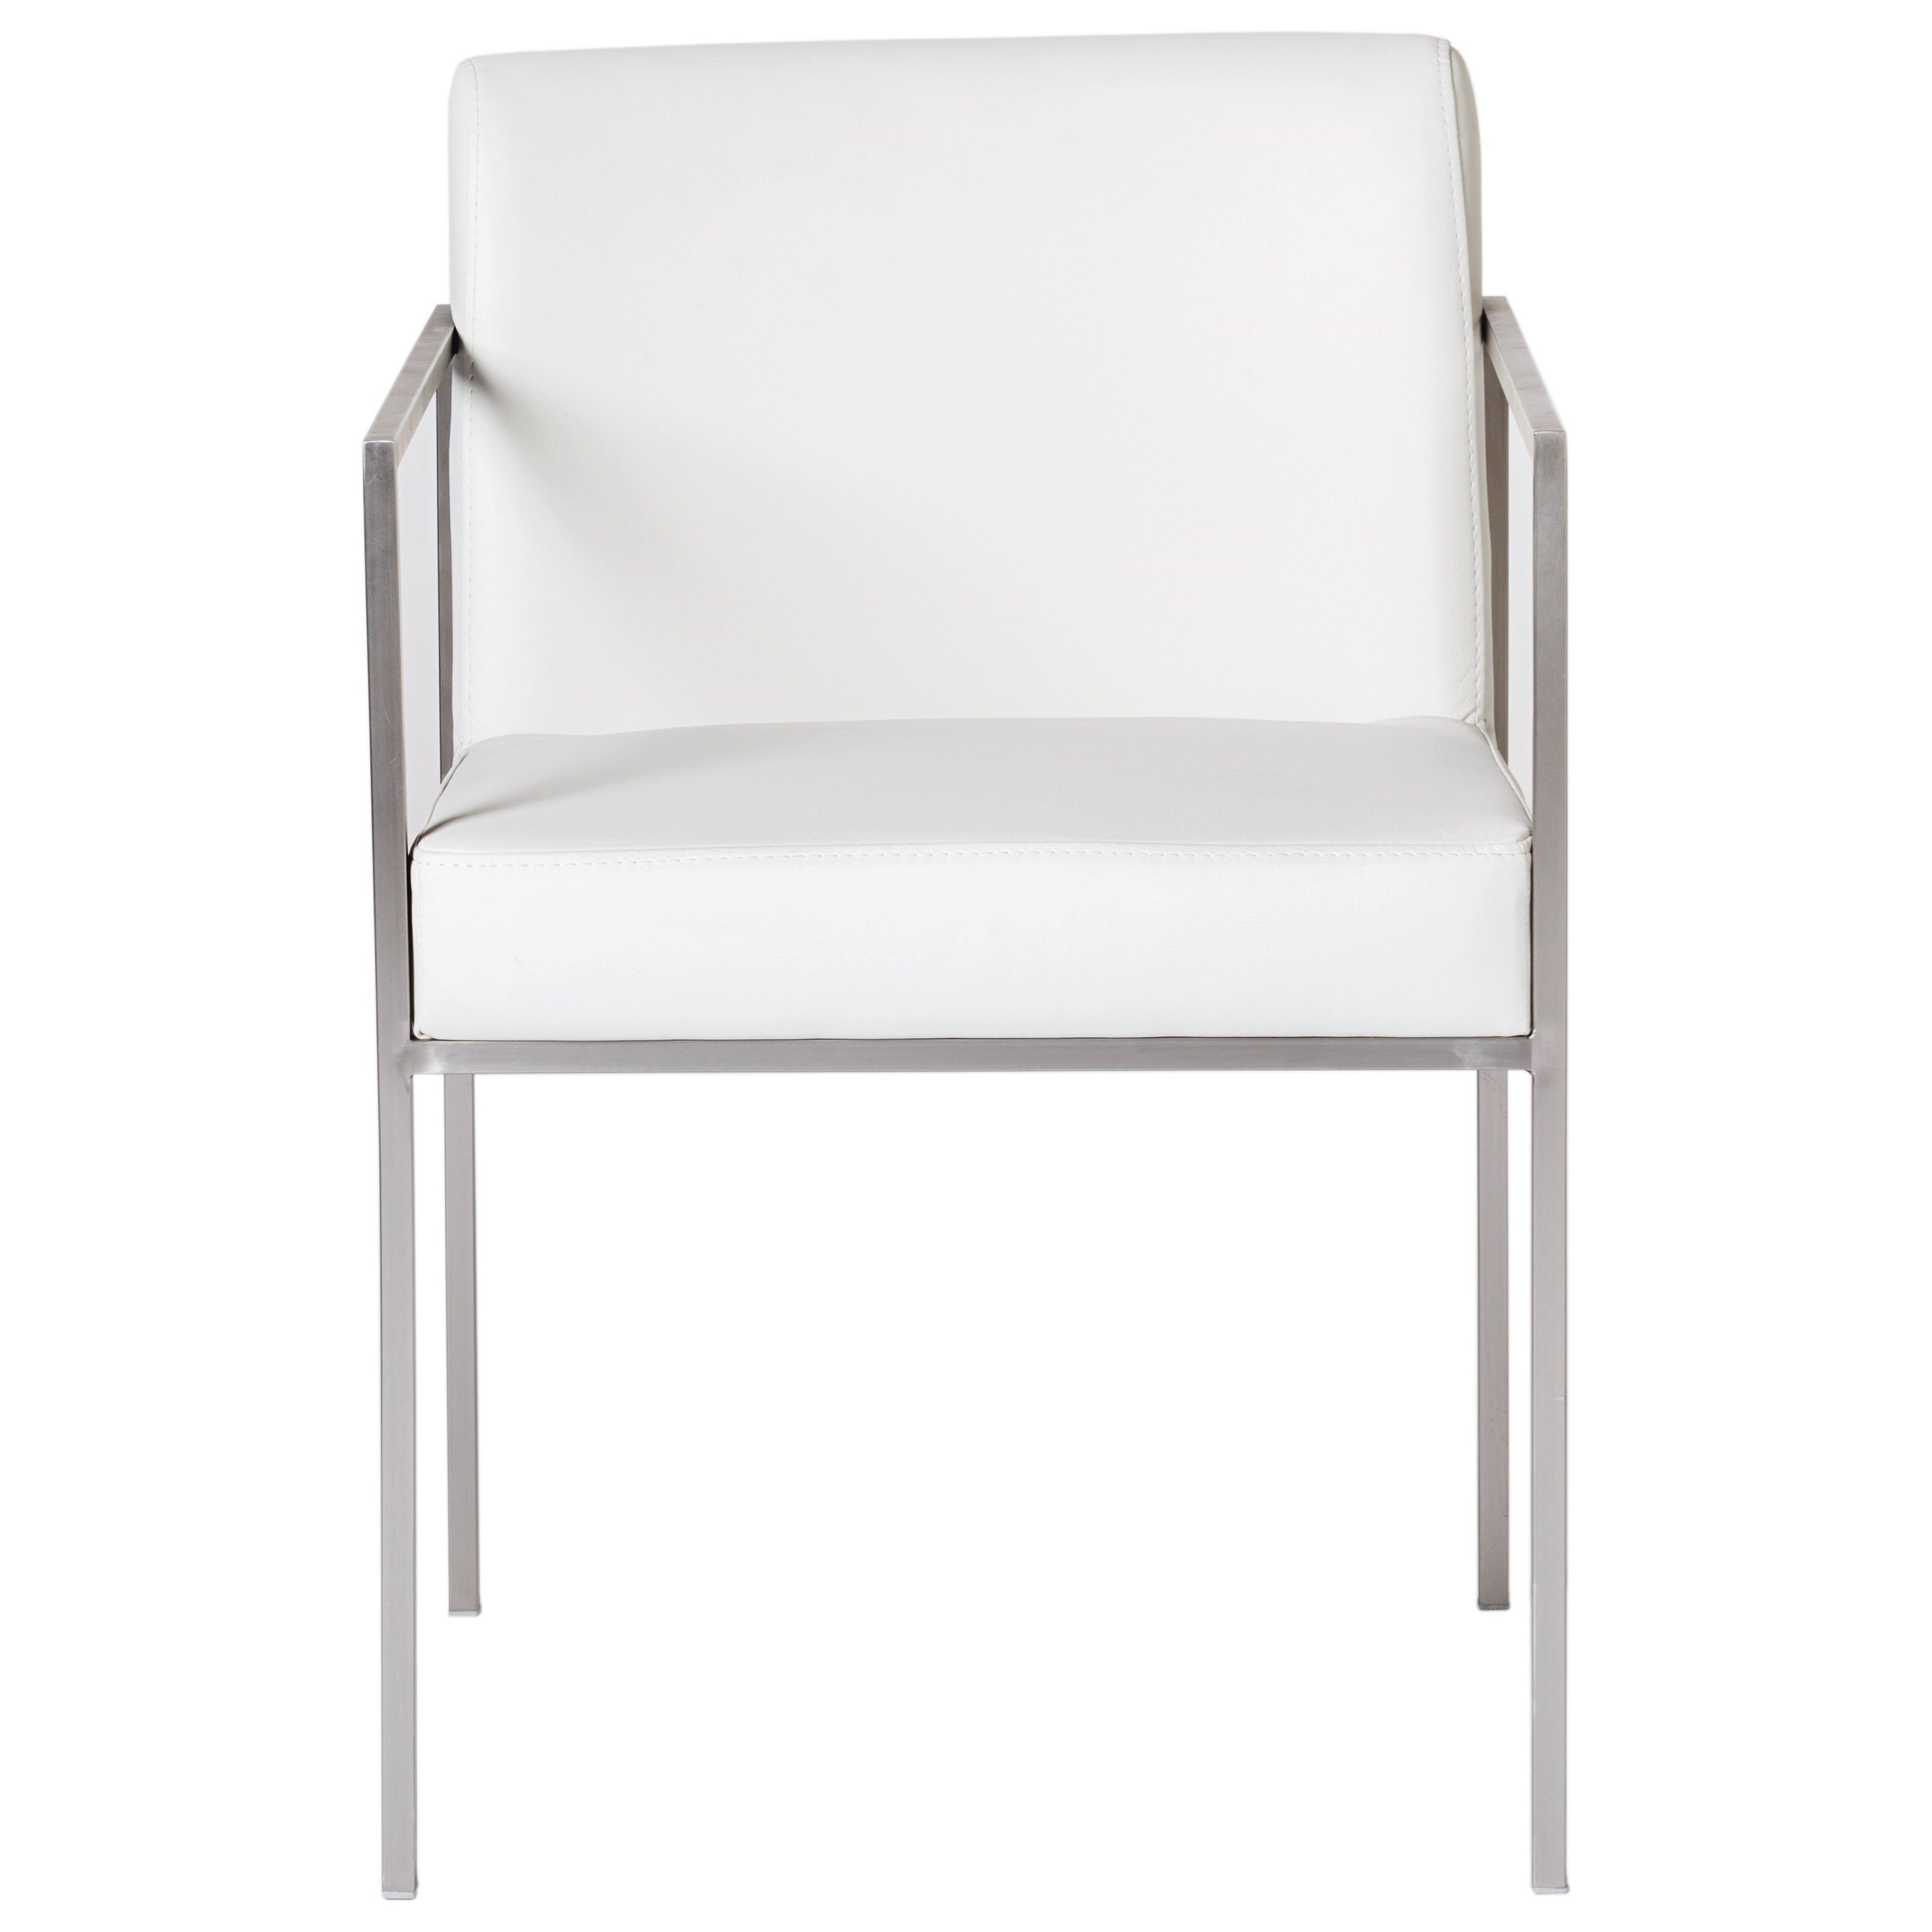 Capo Arm Chair by Moe's Home Collection at Stoney Creek Furniture